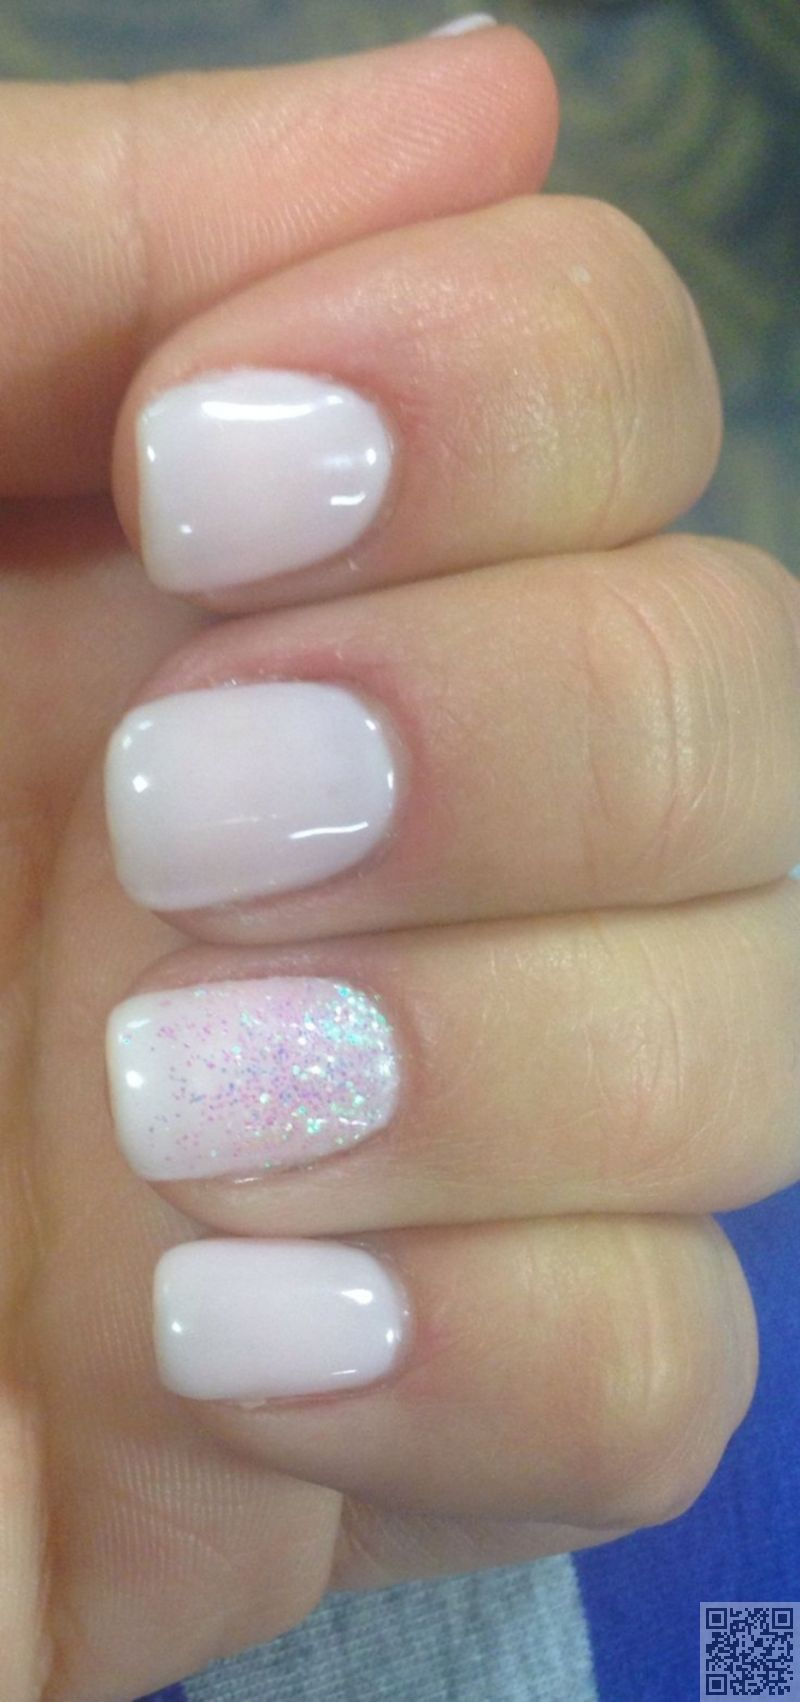 16. Soft #White Color - White Hot #Nails for #Summertime ...